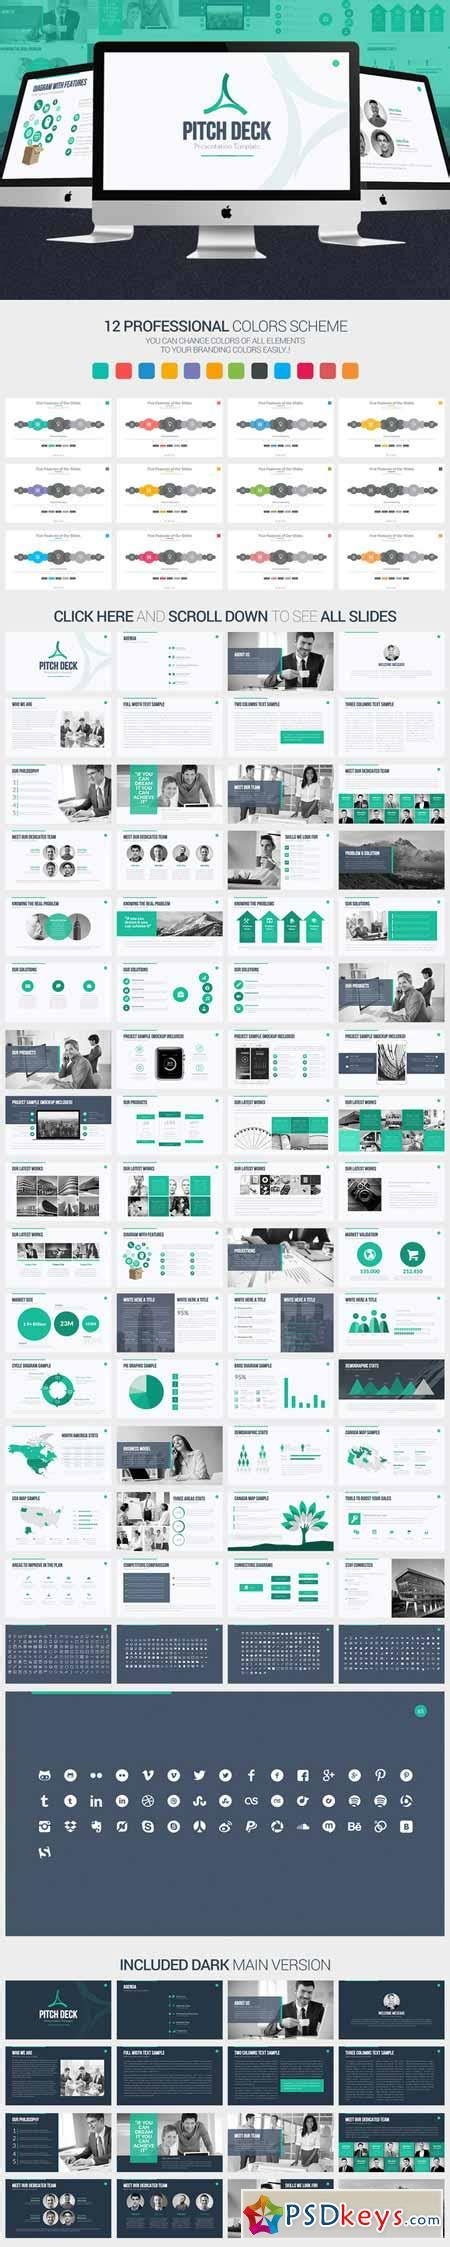 Pitch Deck Powerpoint Template 375469 187 Free Download Photoshop Vector Stock Image Via Torrent Pitch Deck Template Powerpoint Free